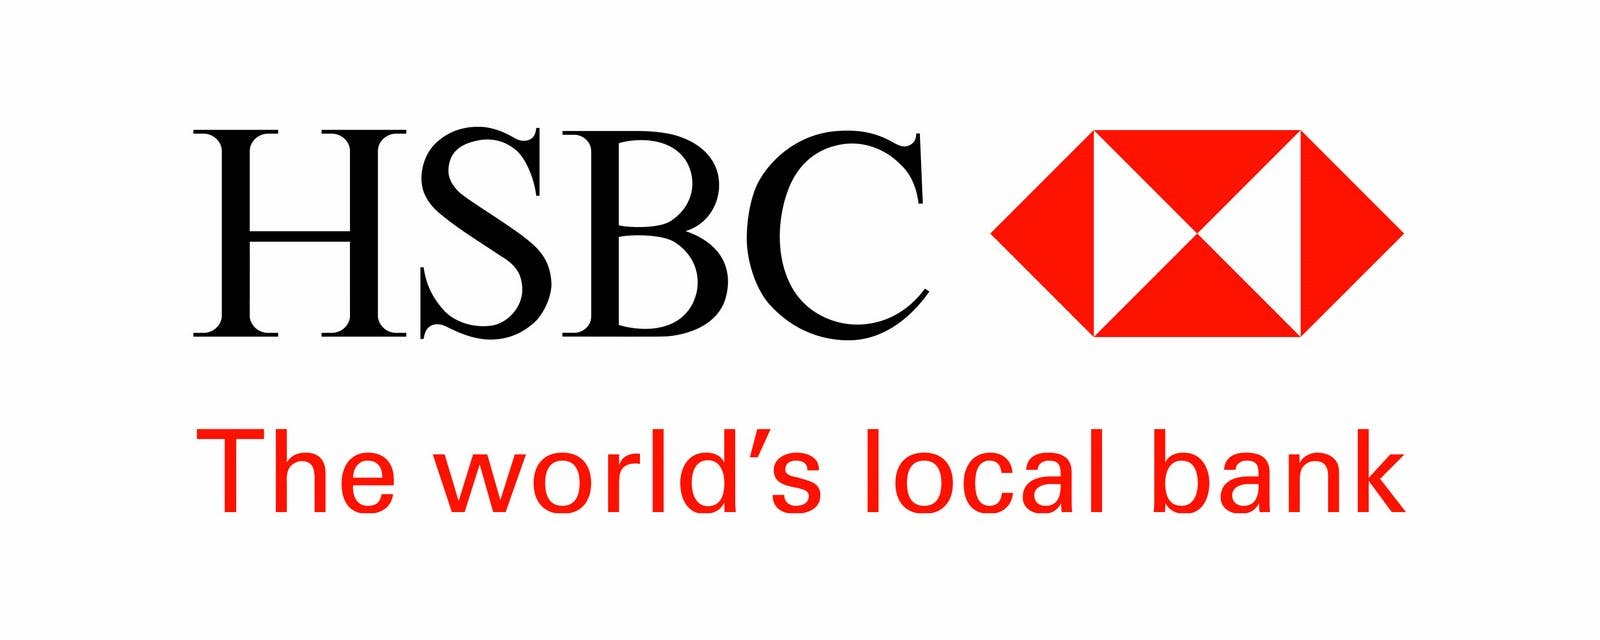 HSBC India To Launch Green Bonds Soon | CleanTechnica